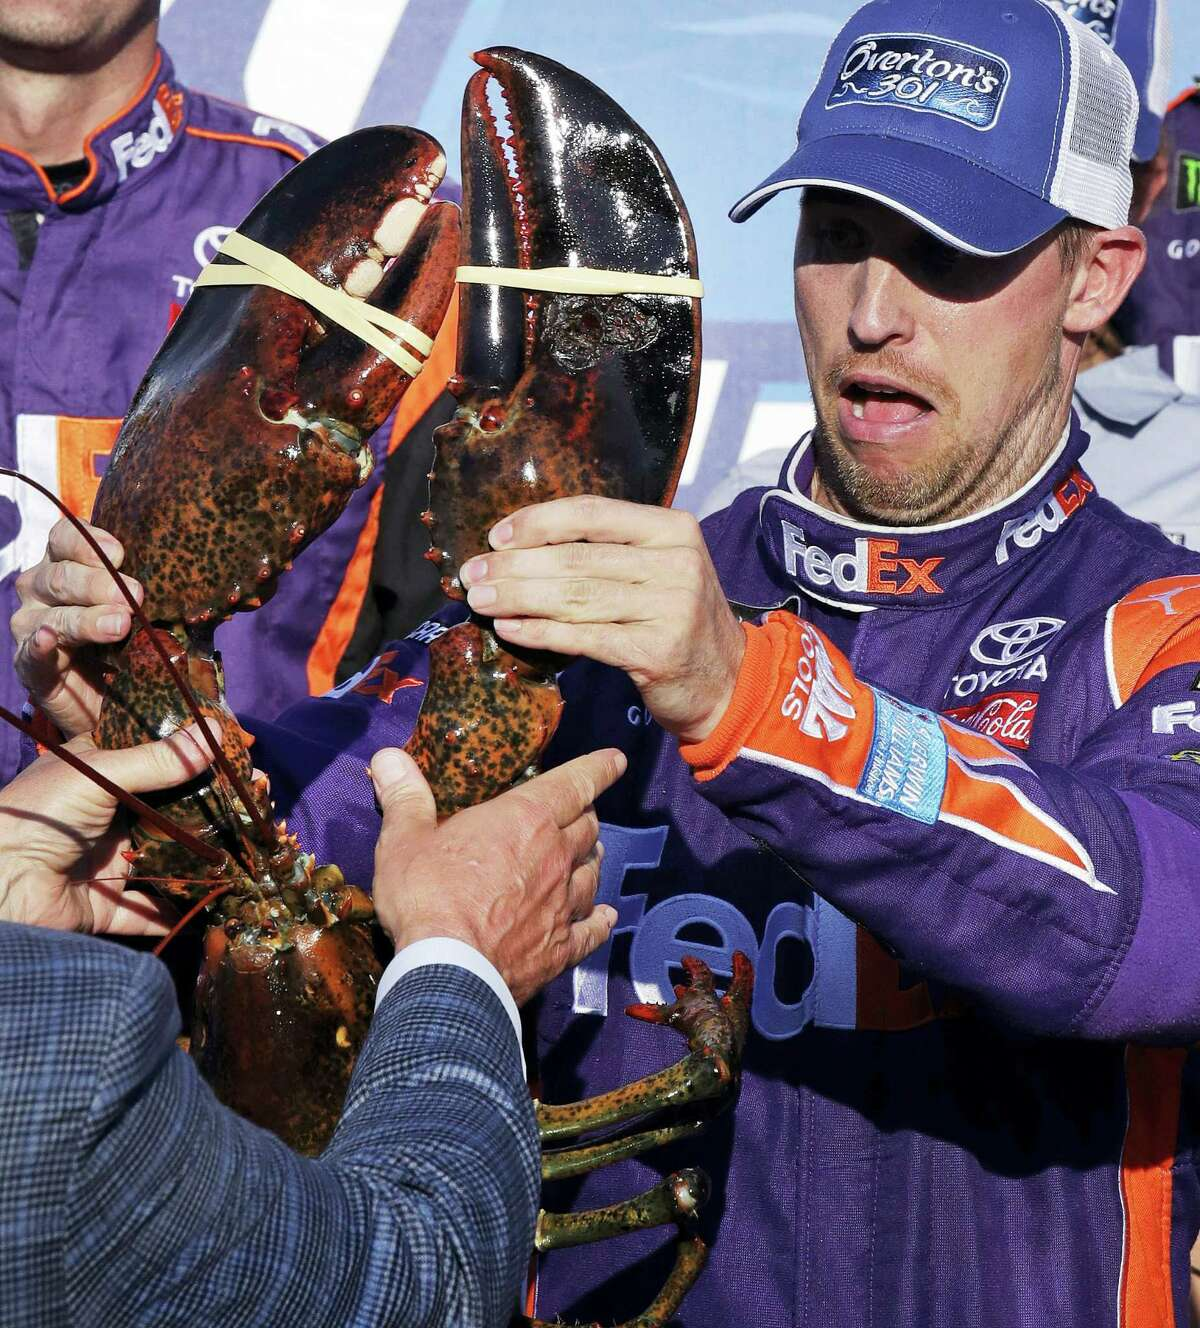 Driver Denny Hamlin reacts as he is handed a lobster after winning at the New Hampshire Motor Speedway in Loudon, N.H., on Sunday.